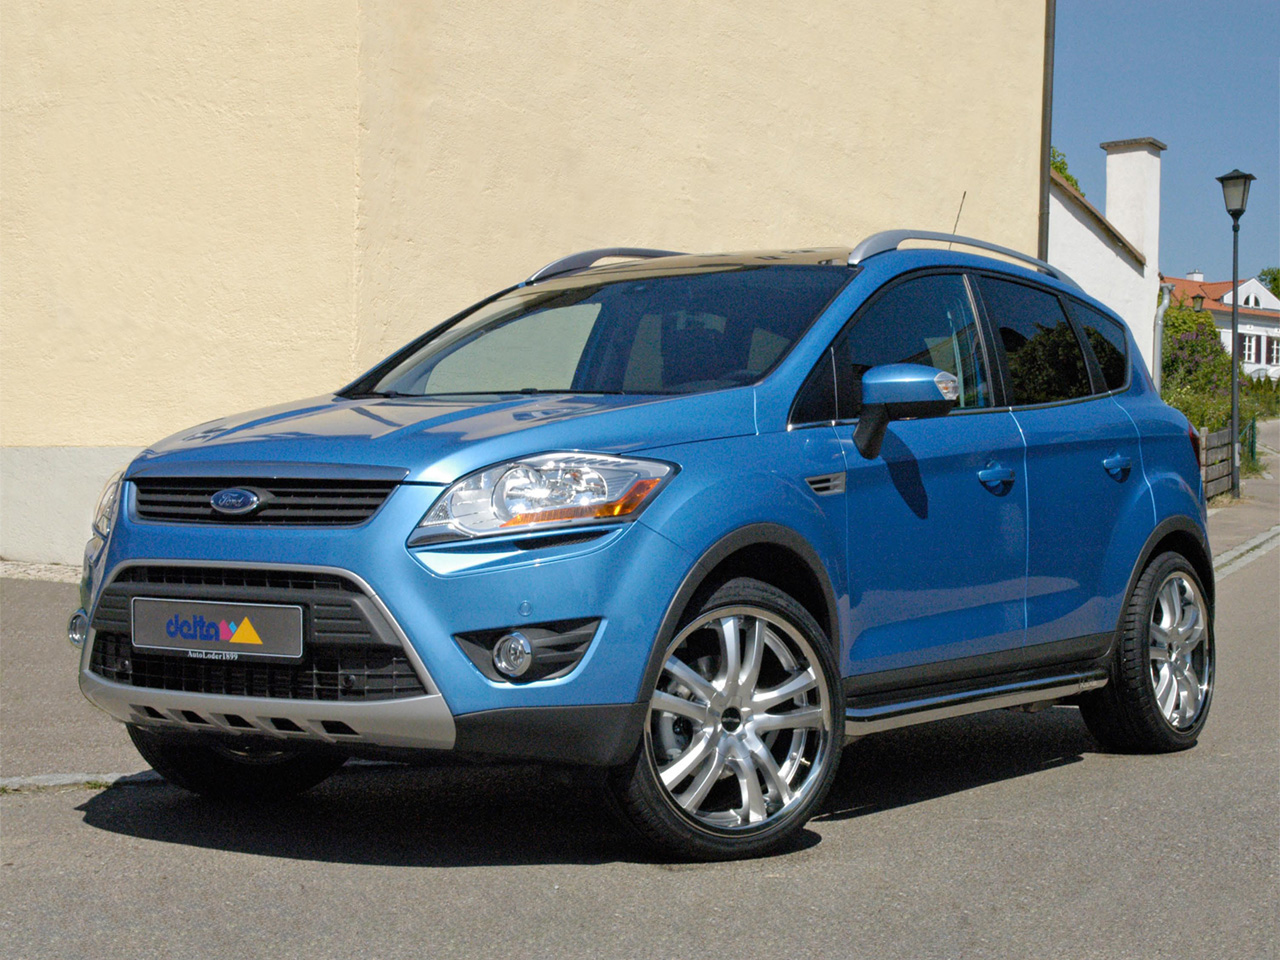 Image Result For Ford Kuga Configurator